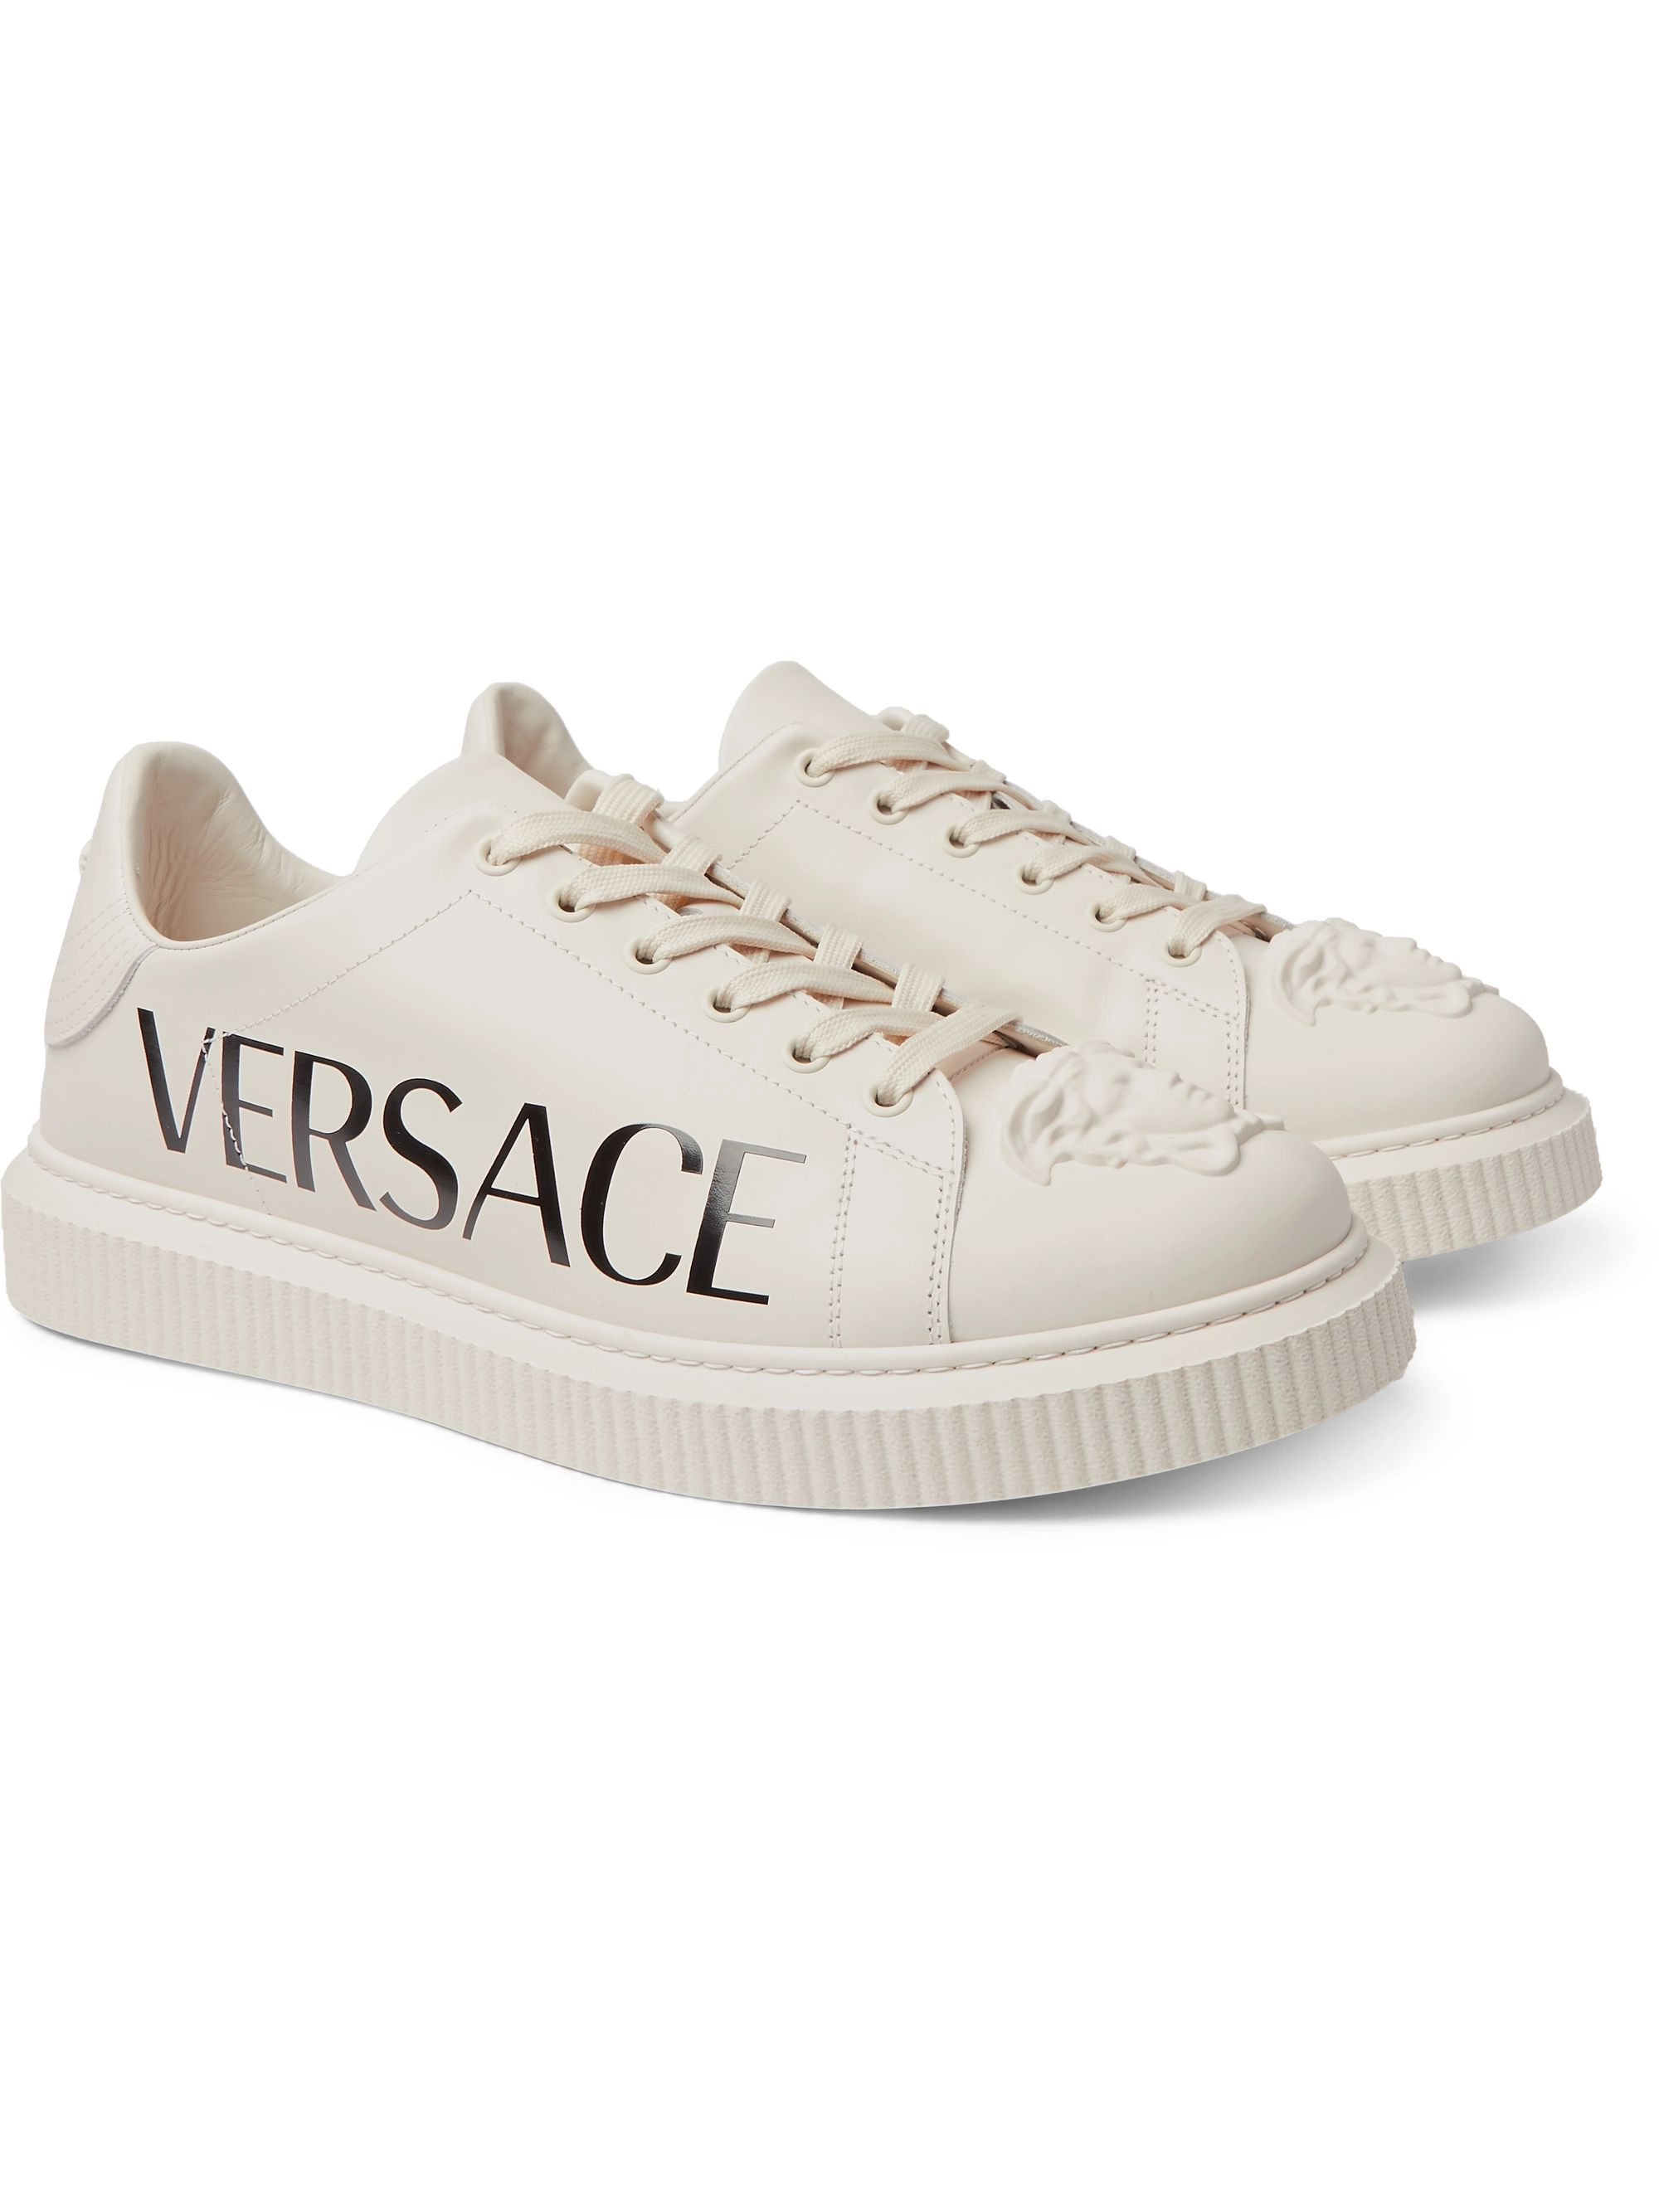 Versace Logo-Print Rubber-Trimmed Leather Sneakers